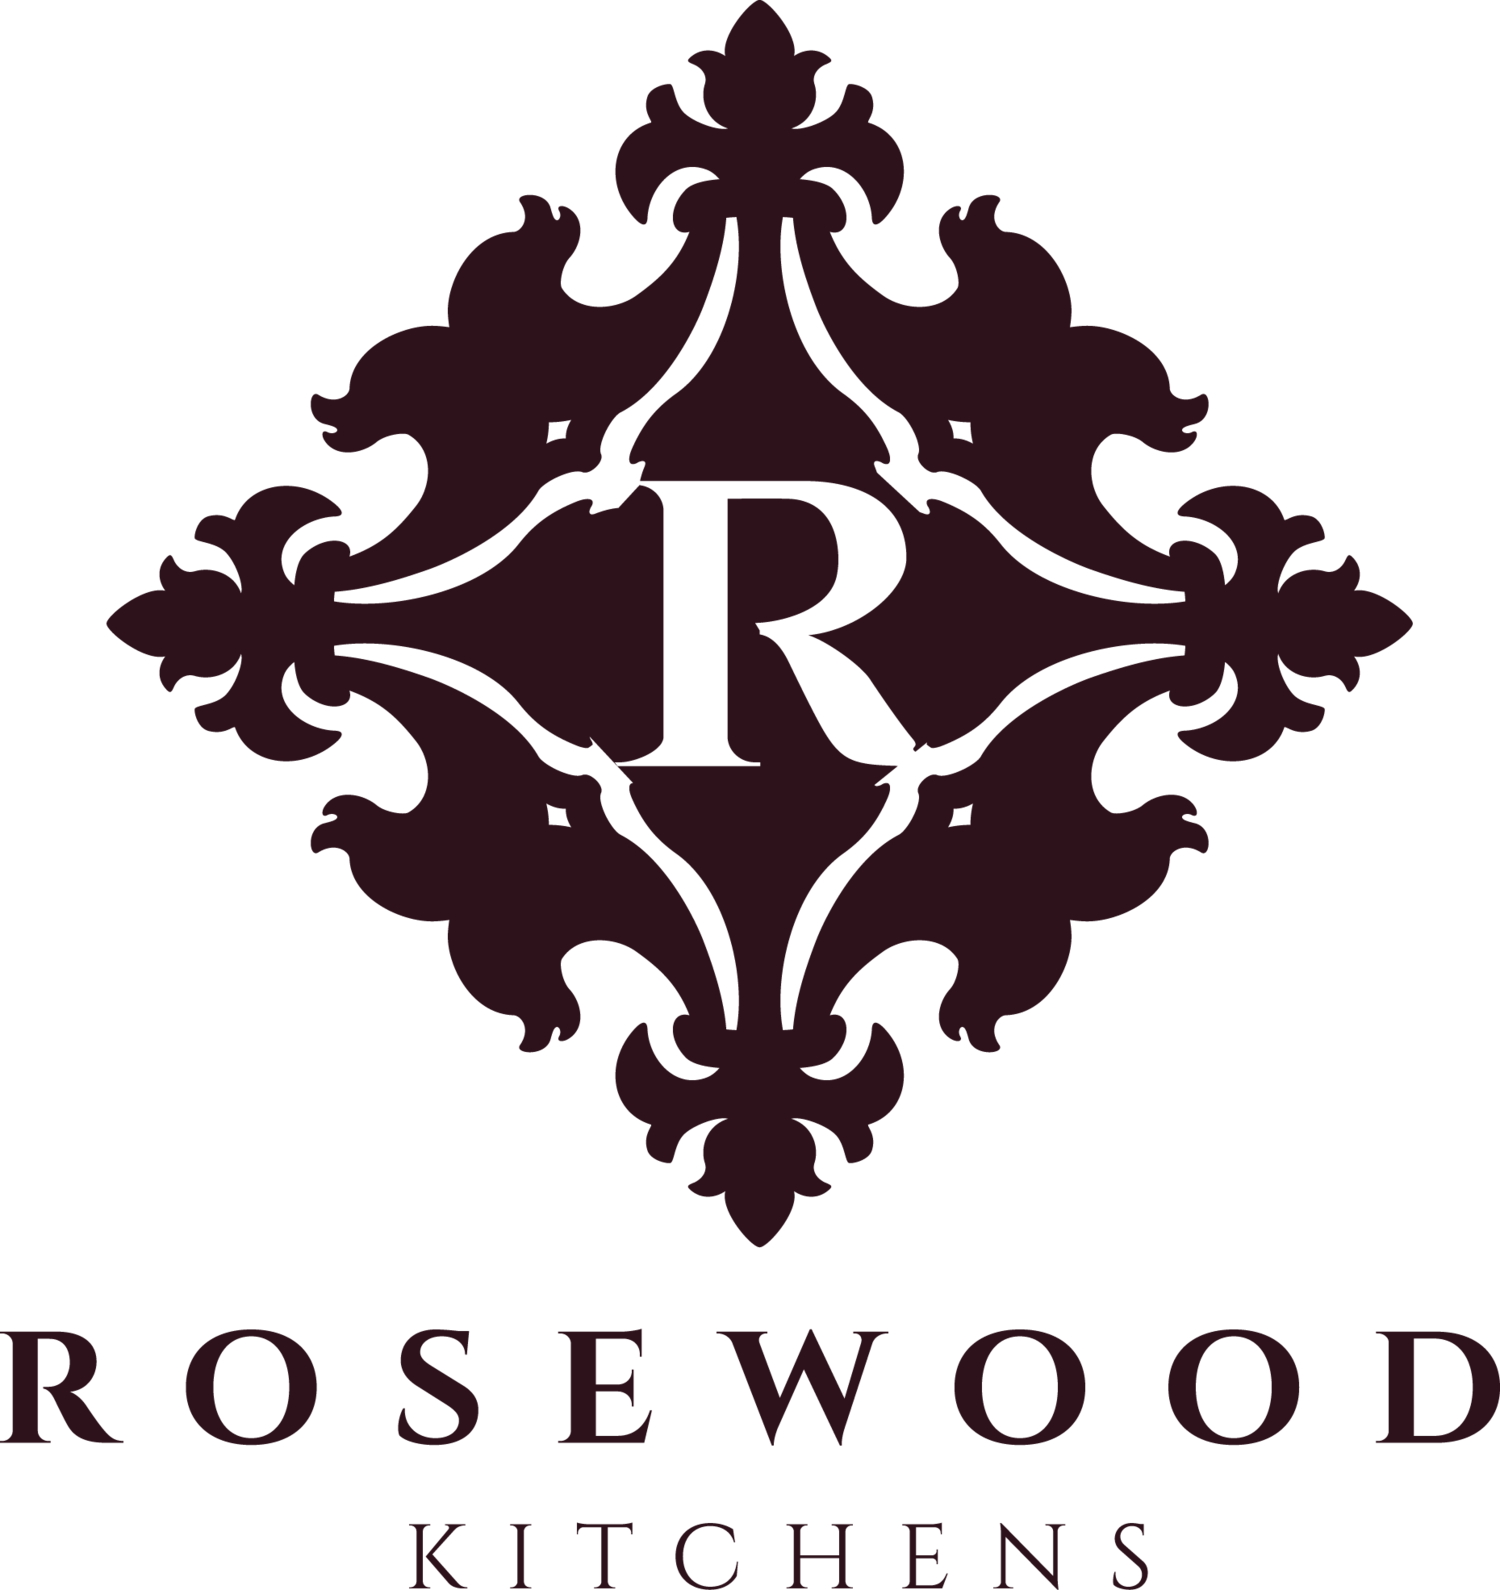 Rosewood Kitchens